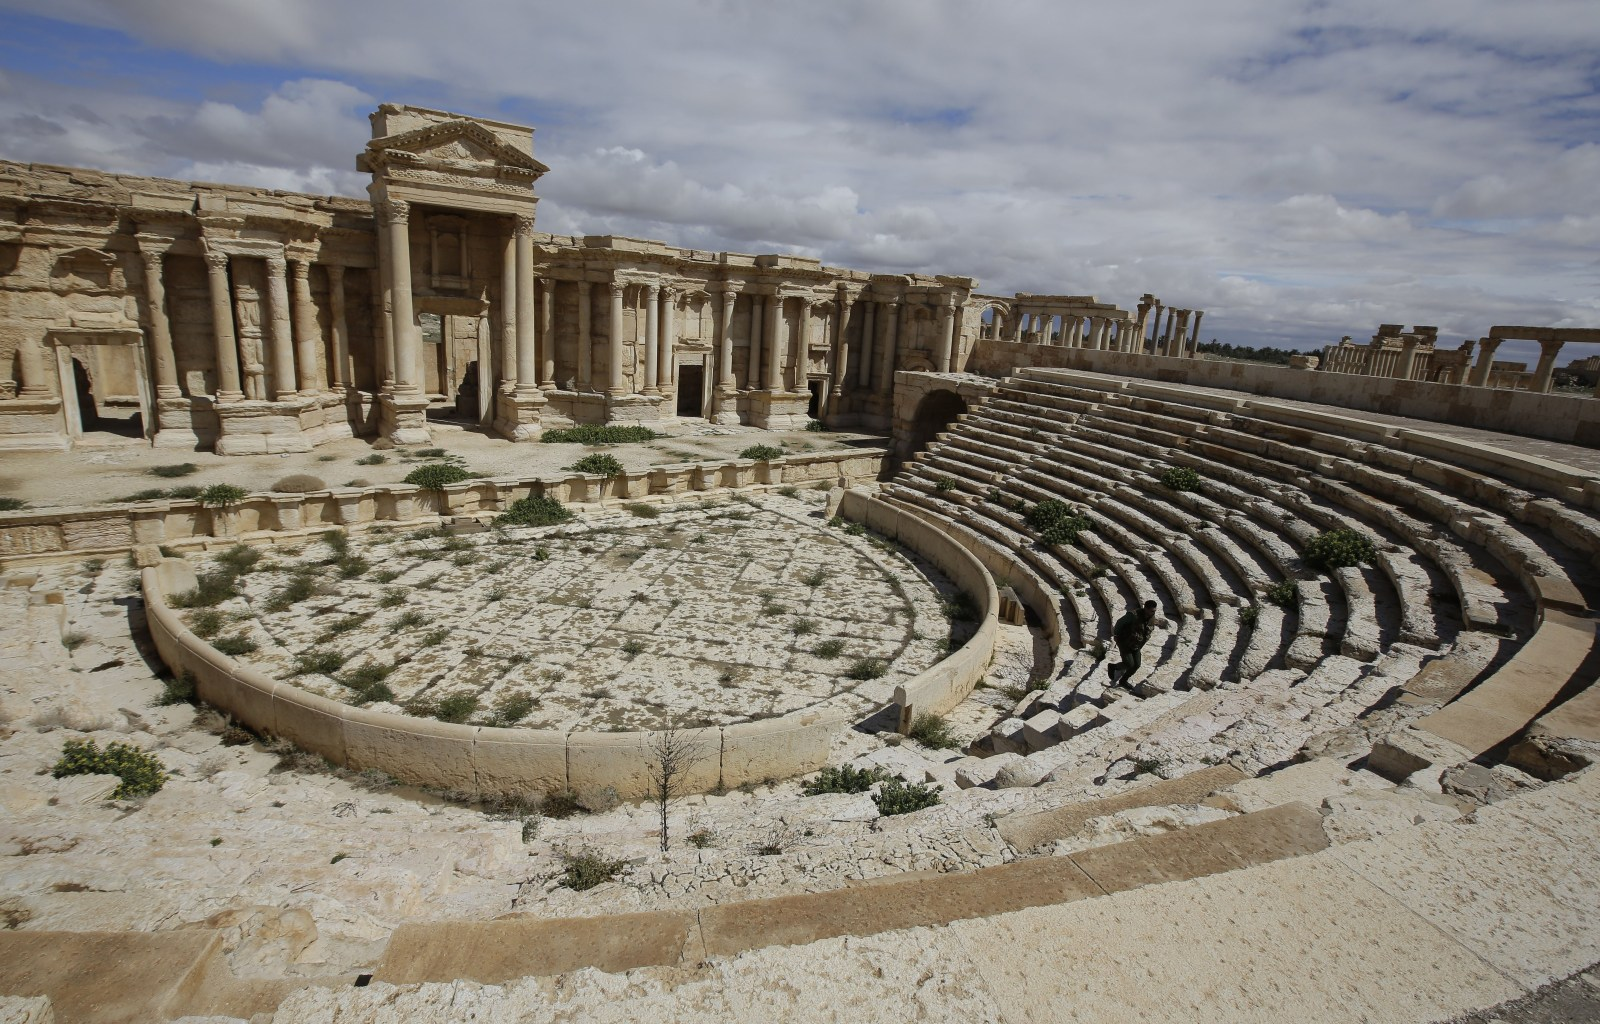 A picture taken on March 14, 2014 shows a partial view of the theatre at the ancient oasis city of Palmyra, 215 kilometres northeast of Damascus. From the 1st to the 2nd century, the art and architecture of Palmyra, standing at the crossroads of several civilizations, married Graeco-Roman techniques with local traditions and Persian influences. AFP PHOTO/JOSEPH EID        (Photo credit should read JOSEPH EID/AFP/Getty Images)